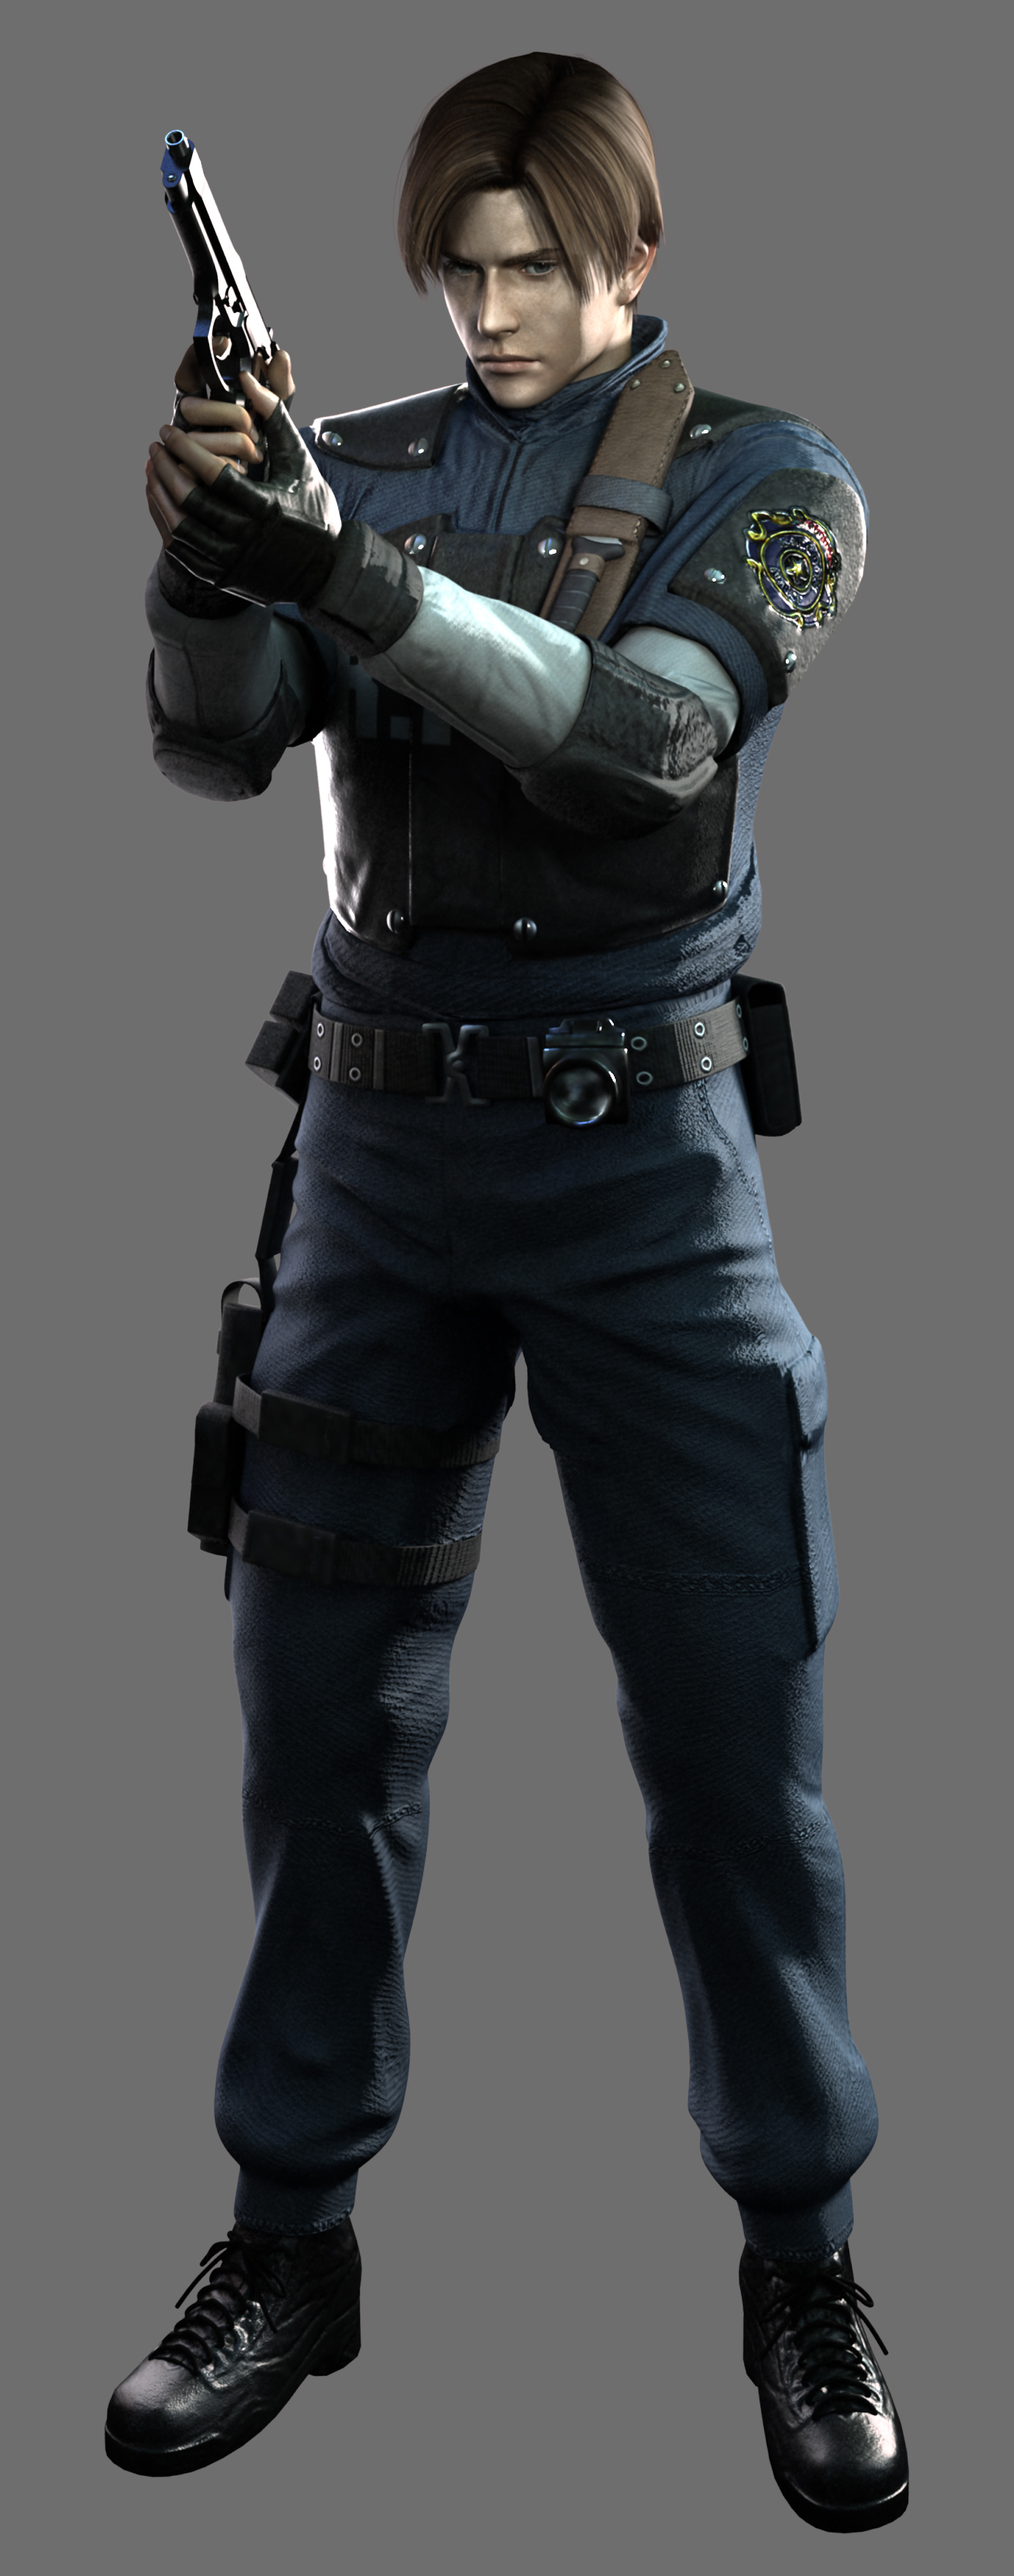 Image result for leon s kennedy appearance